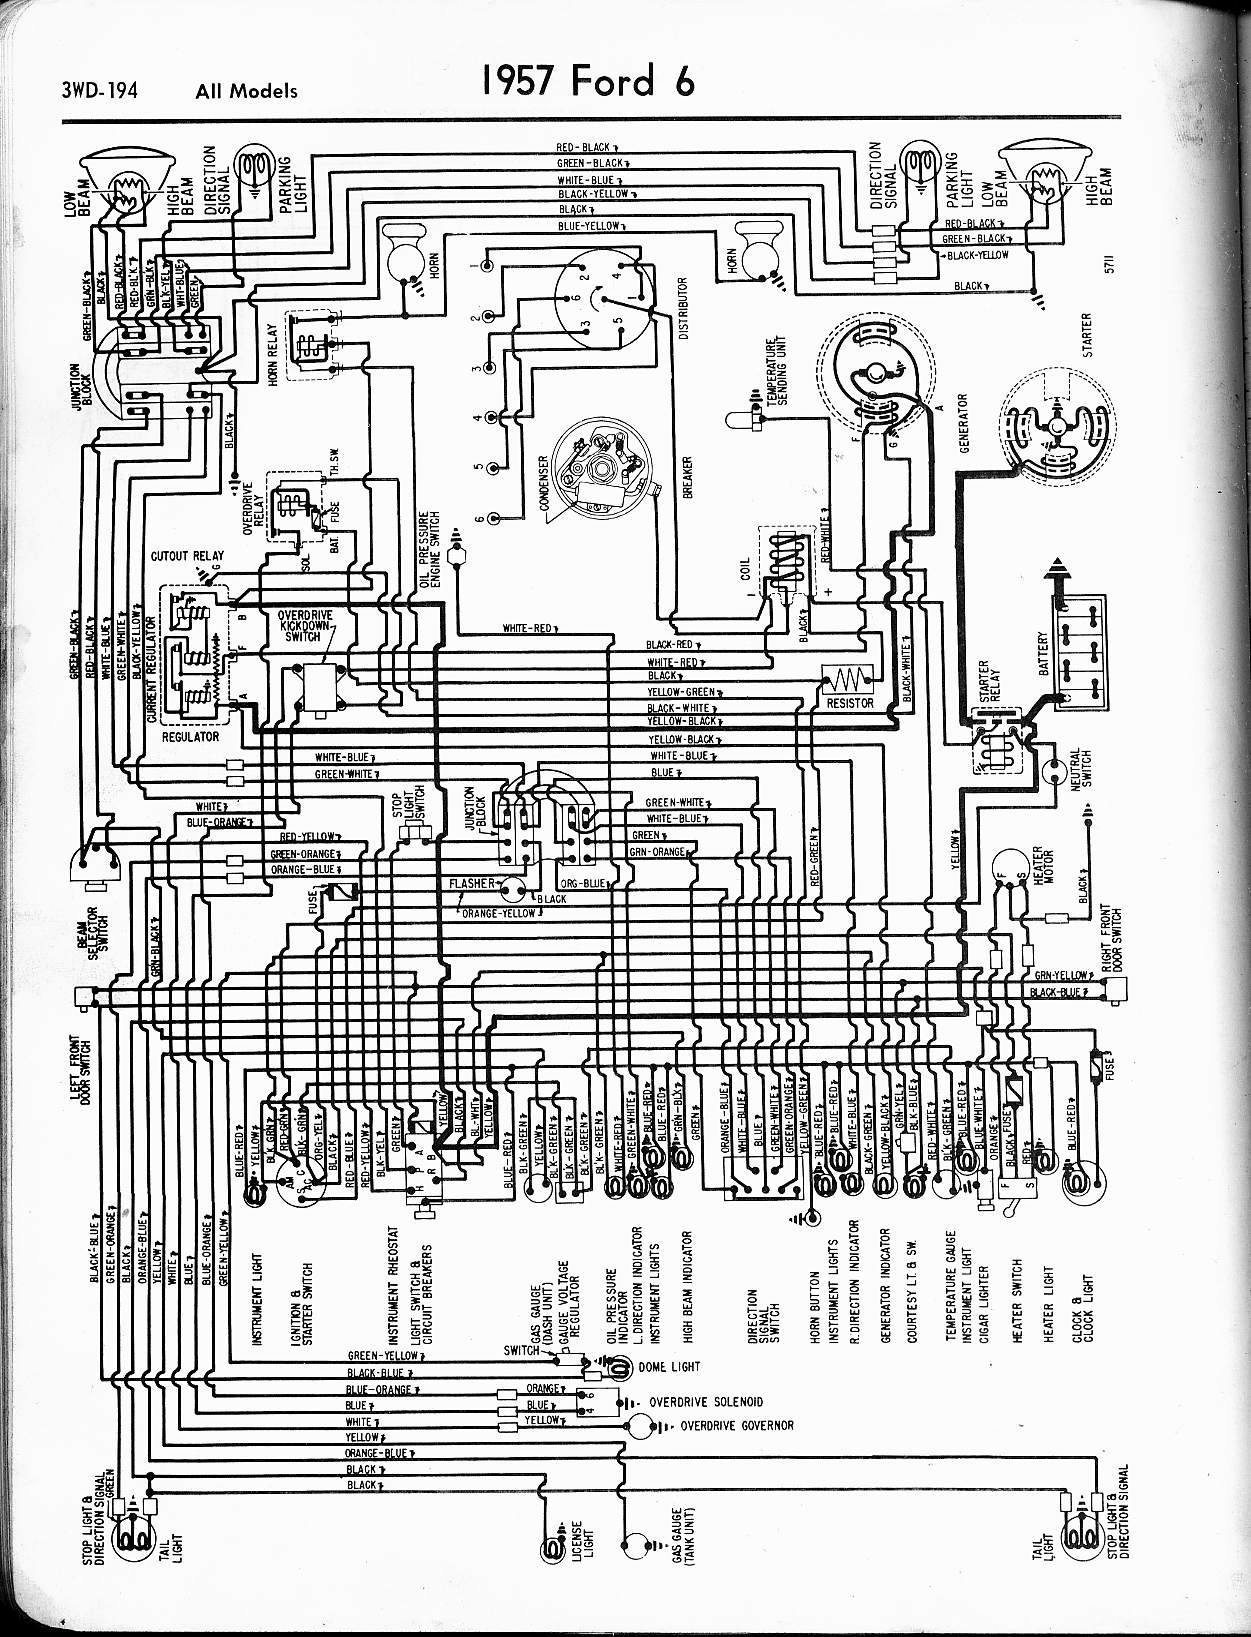 2003 F250 Electrical Fuse Panel Diagram Worksheet And Wiring Ford F 250 Interior Box Detailed Schematics Rh Jvpacks Com Super Duty